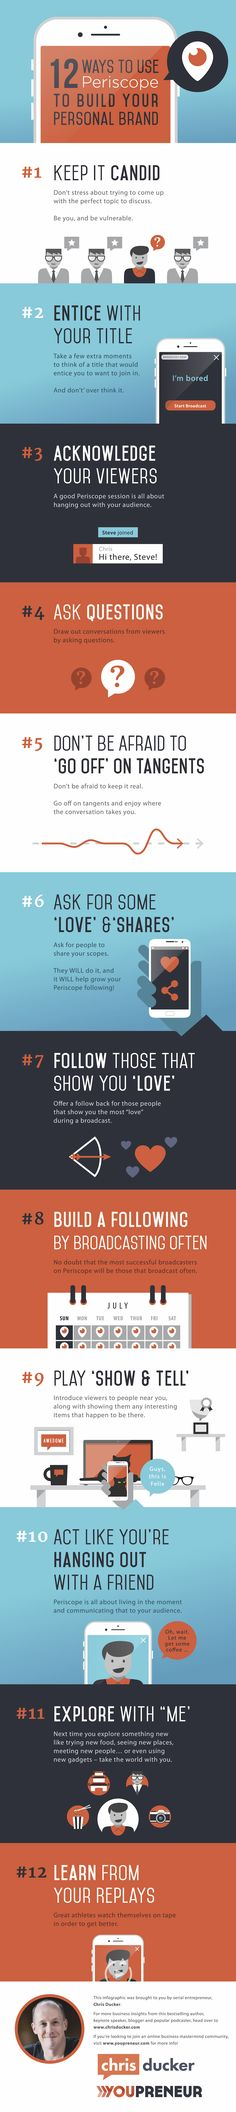 How to Use Periscope to Build Your Personal Brand [Infographic] Social Media Today Social Media Branding, Social Media Tips, Social Media Marketing, Content Marketing, Marketing En Internet, Online Marketing, Marketing Ideas, Marketing Tools, Social Business